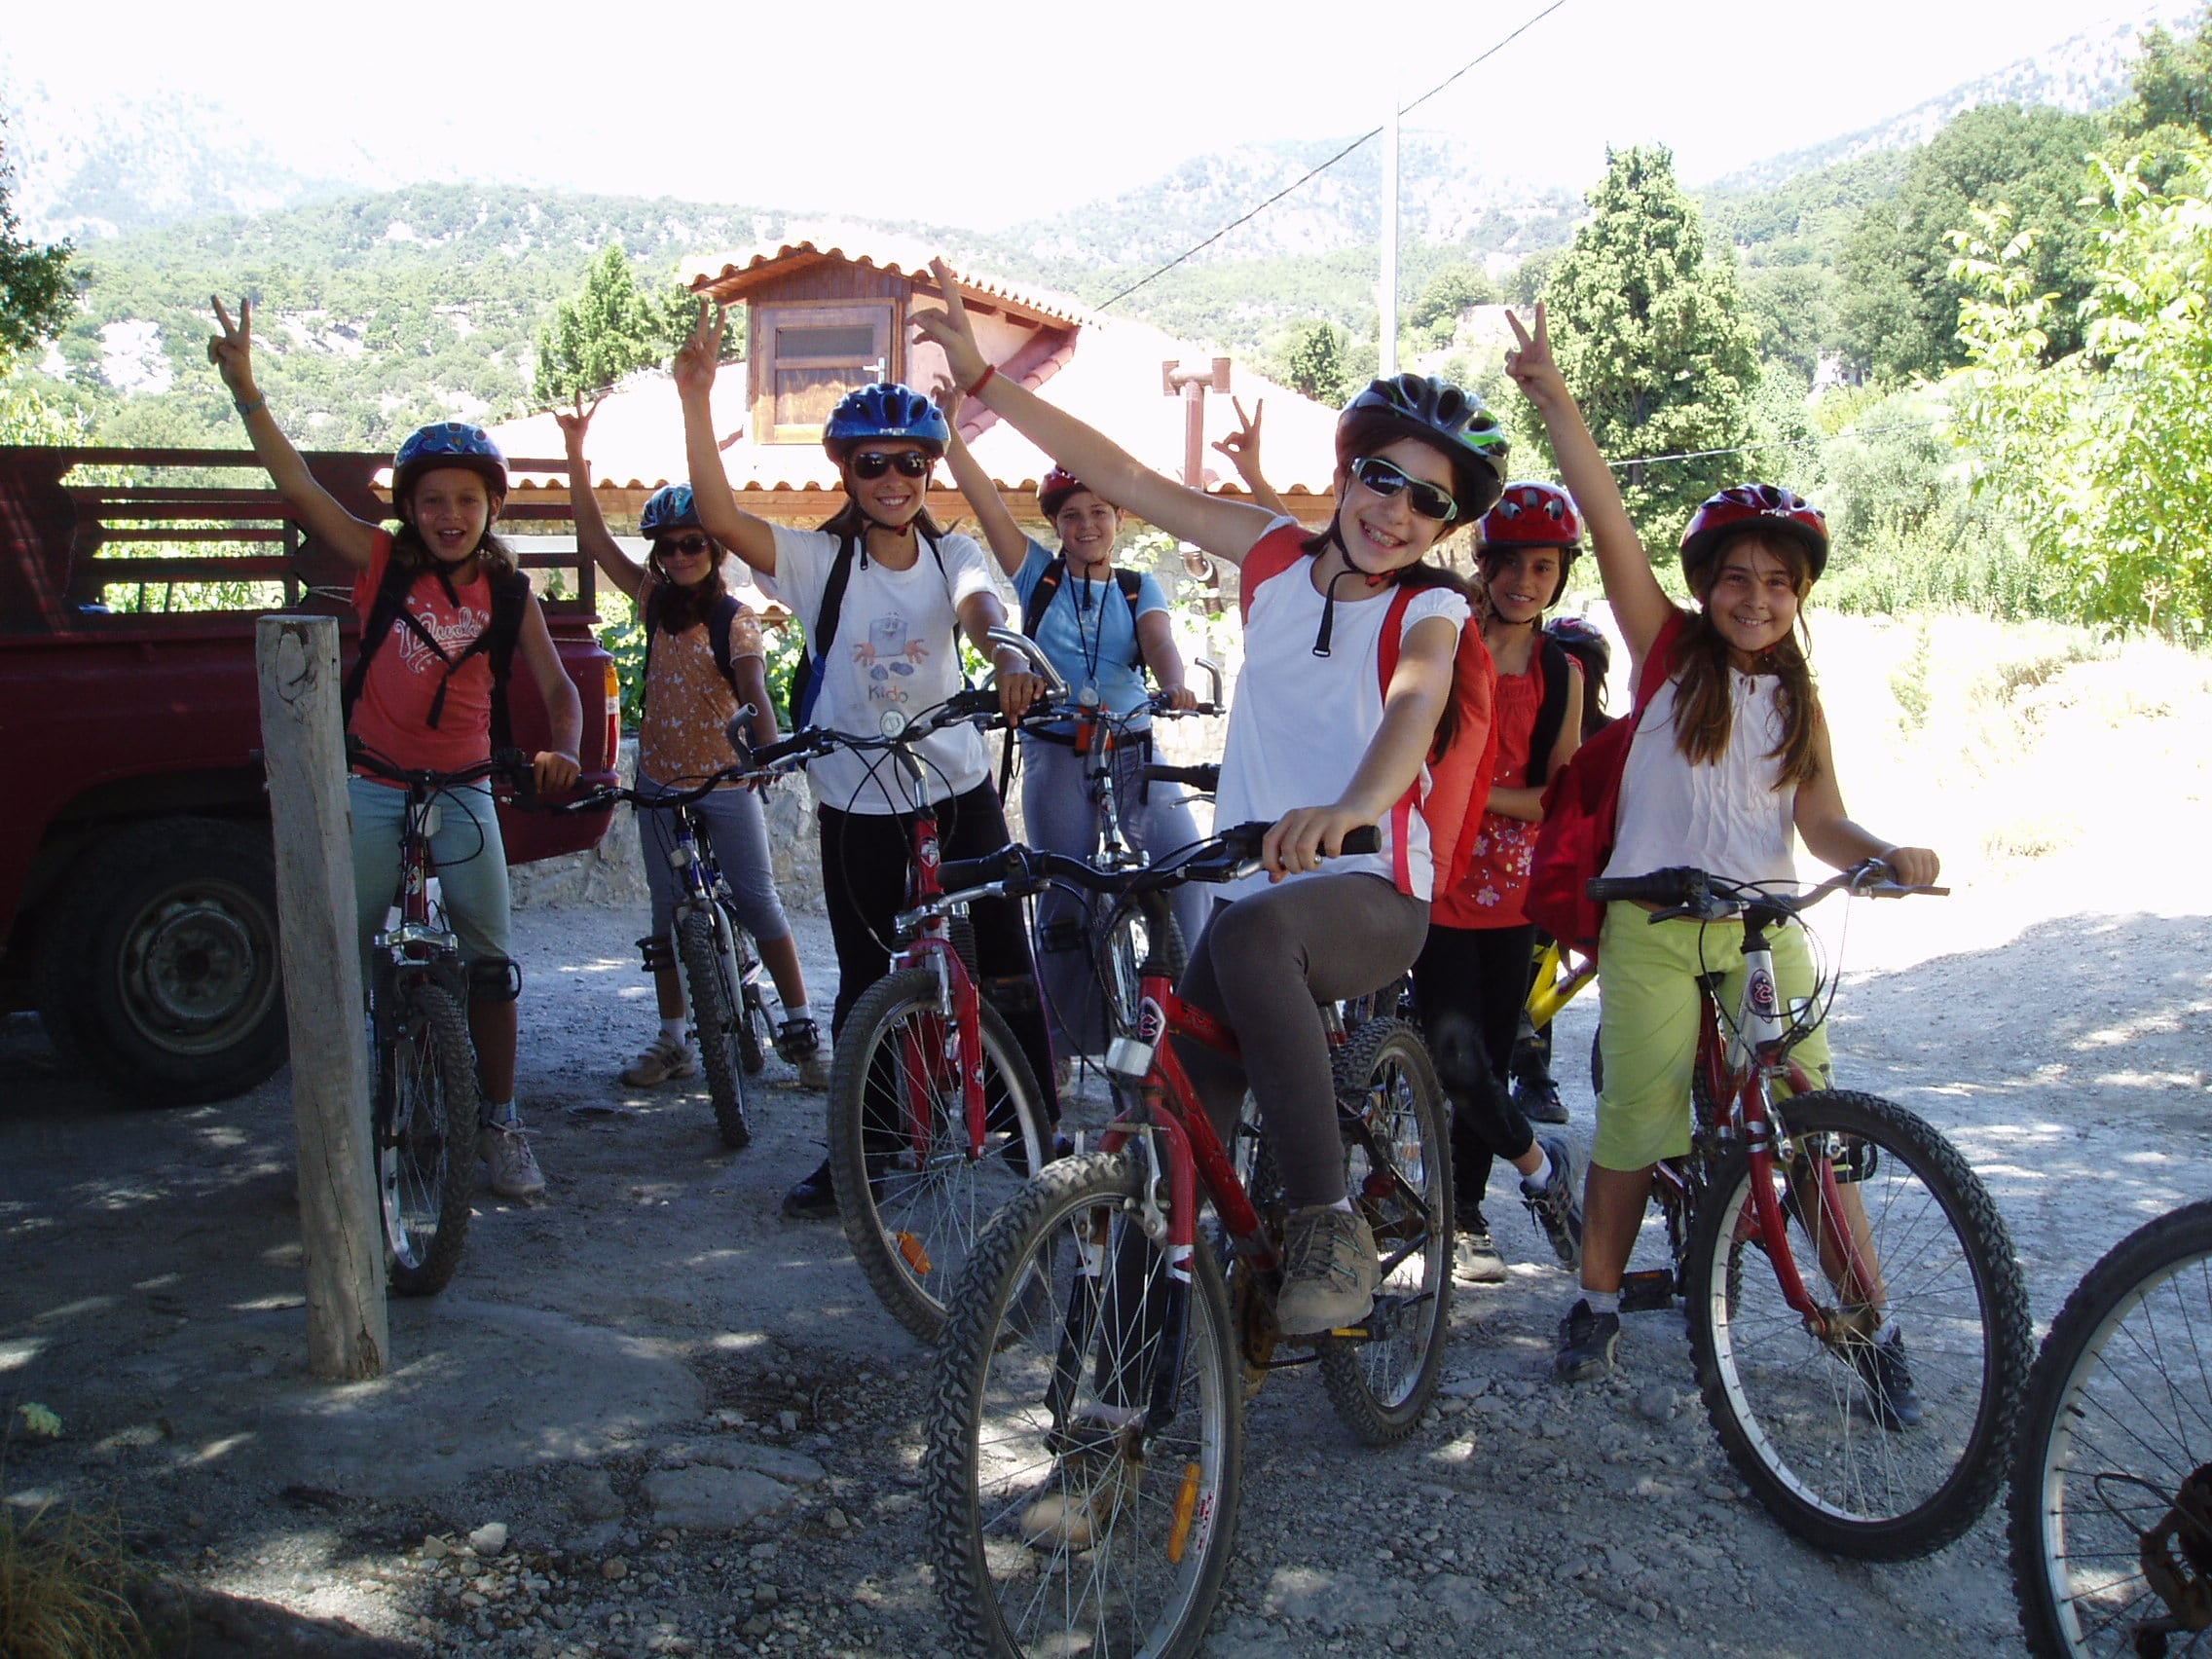 family holiday in Greece mountain biking for families outdoor activities crete